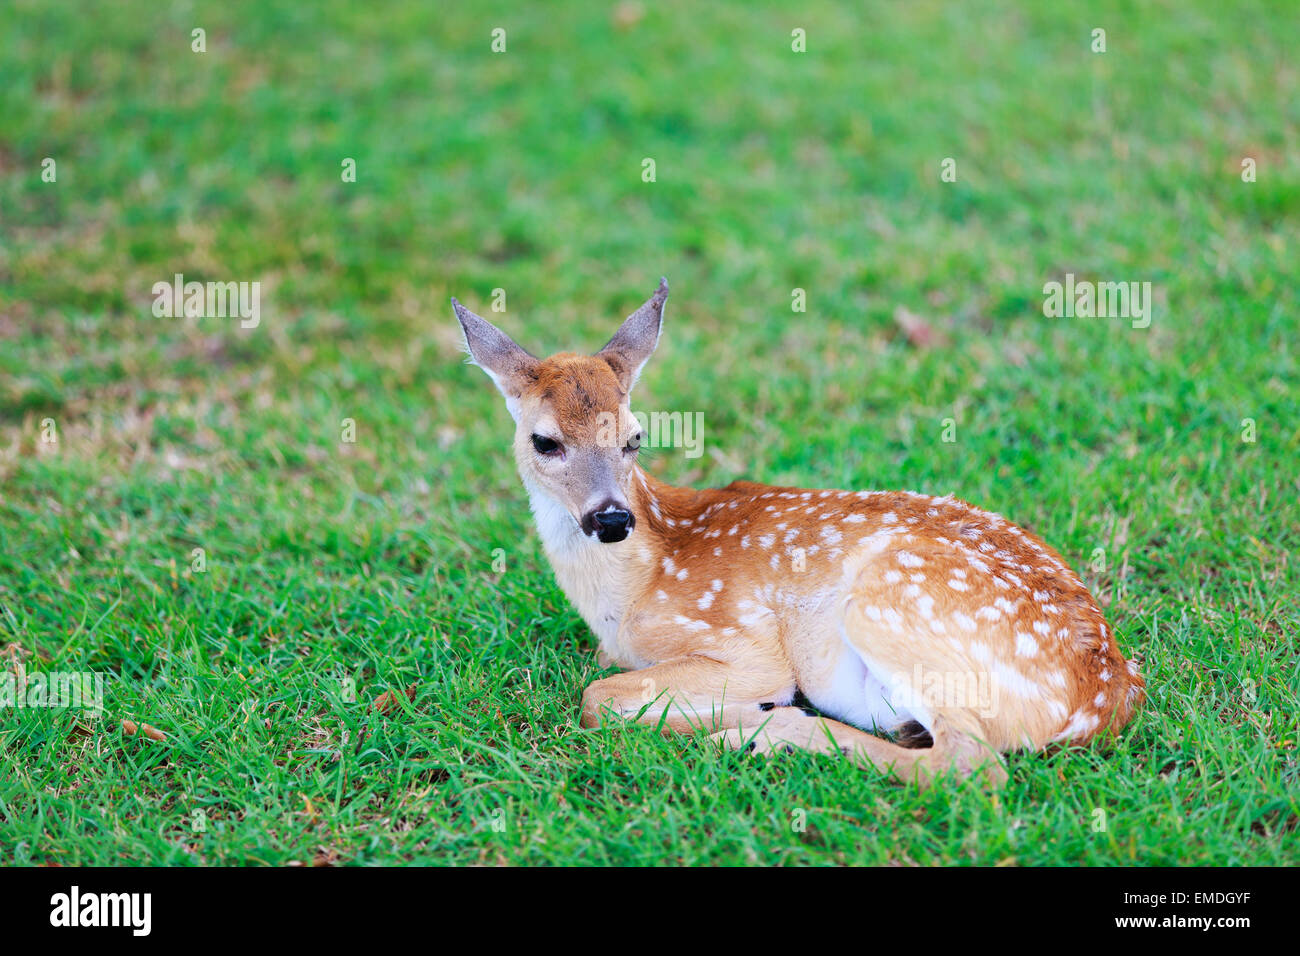 Deer fawn on grass - Stock Image